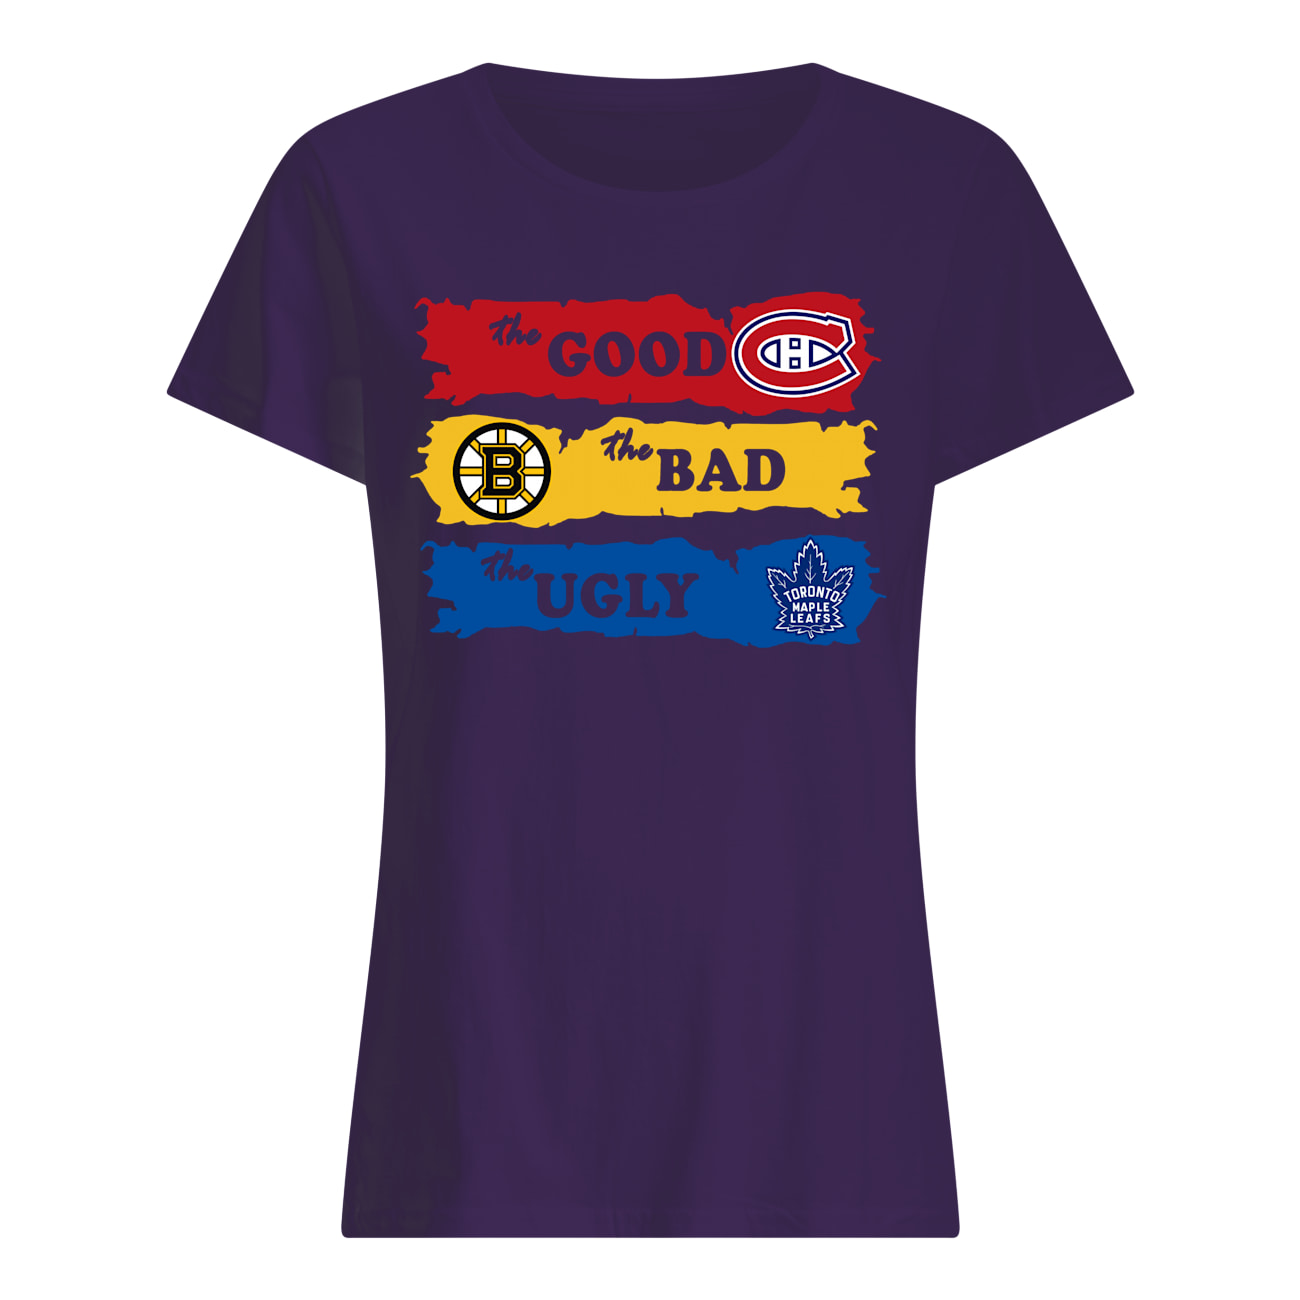 The good montreal canadiens the bad boston bruins the ugly toronto maple leafs womens shirt